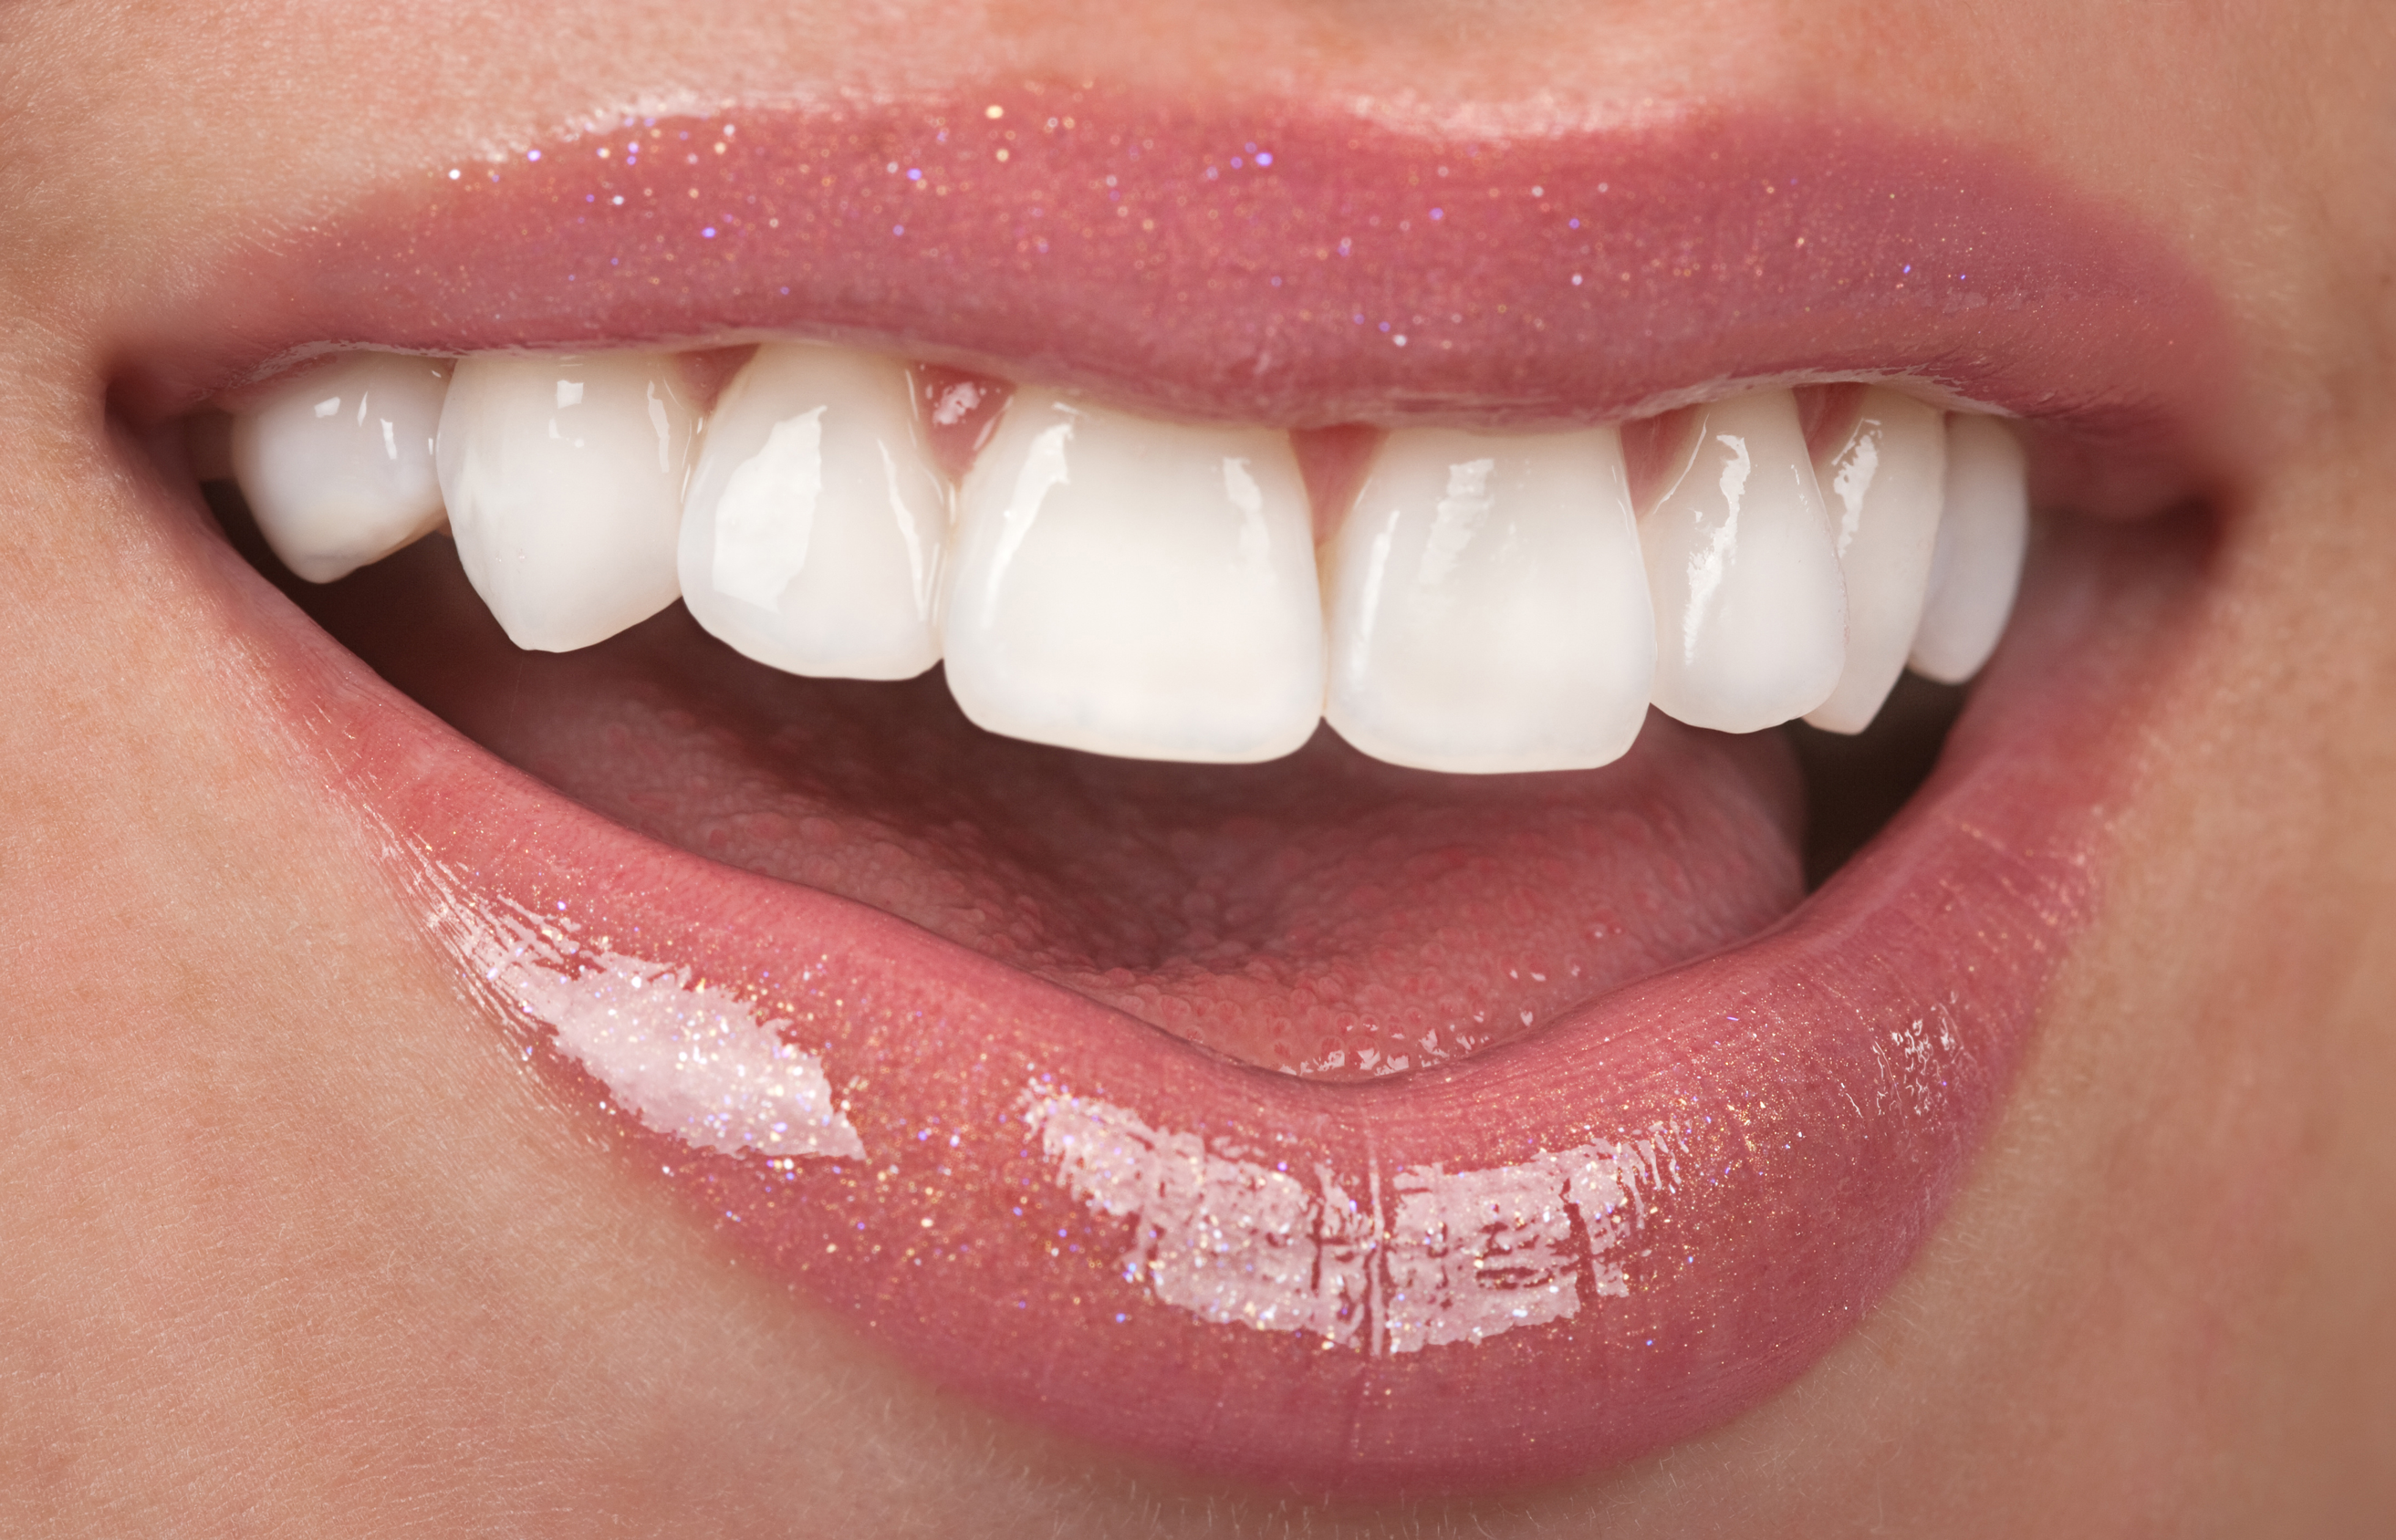 Smiling Teeth | Avalon Dental Care, Cosmetic and Implant Dentists in El Segundo and Carson.